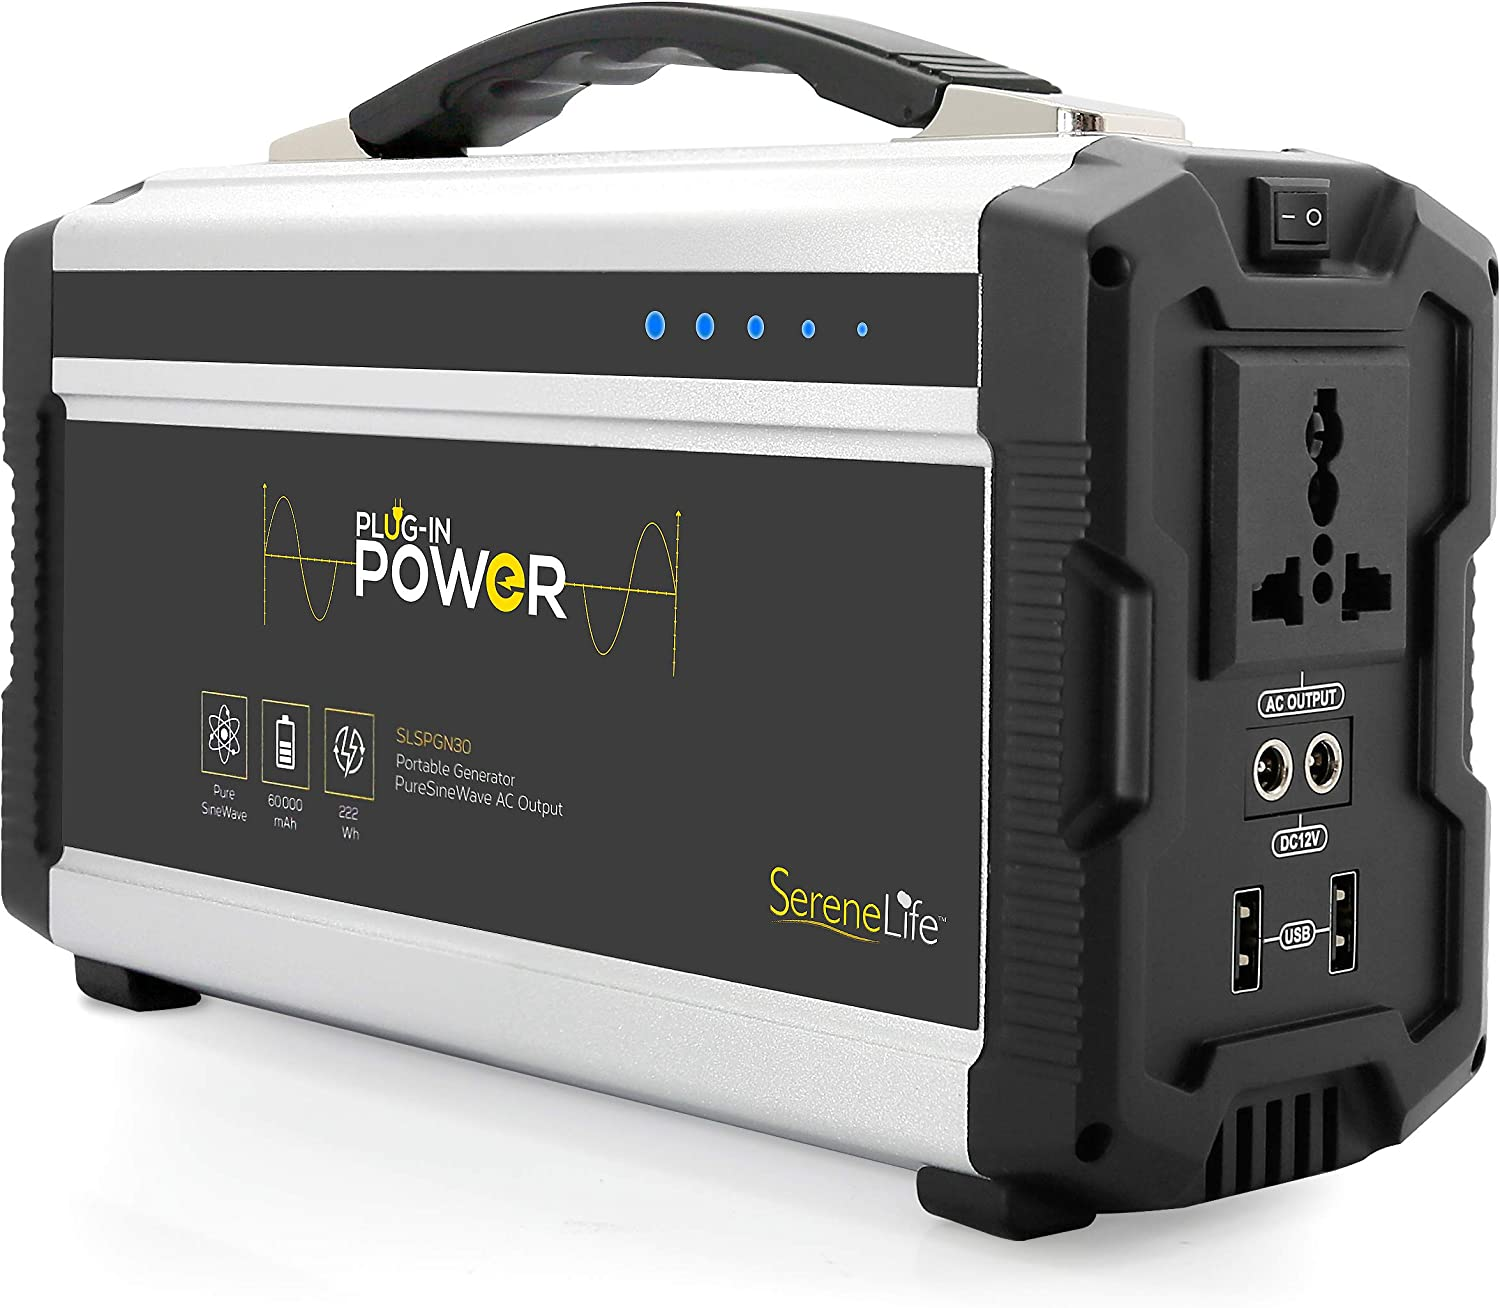 Rechargeable Battery Portable Power Generator – 222-Watt Solar Panel Compatible, Dual USB Device Charge Ports, Digital LED Display Panel – Works with Phones, Tablets Laptops – SereneLife SLSPGN30